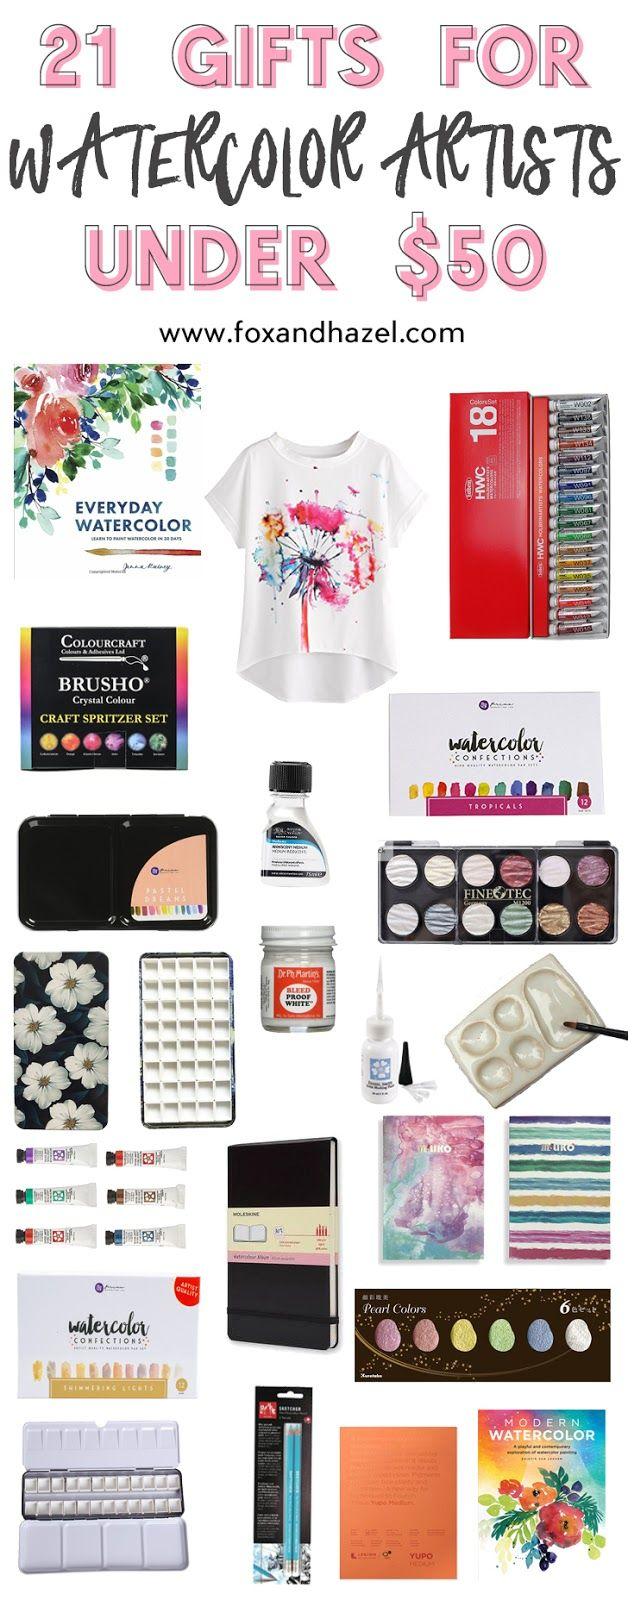 21 Gifts for Watercolor Artists Under $50